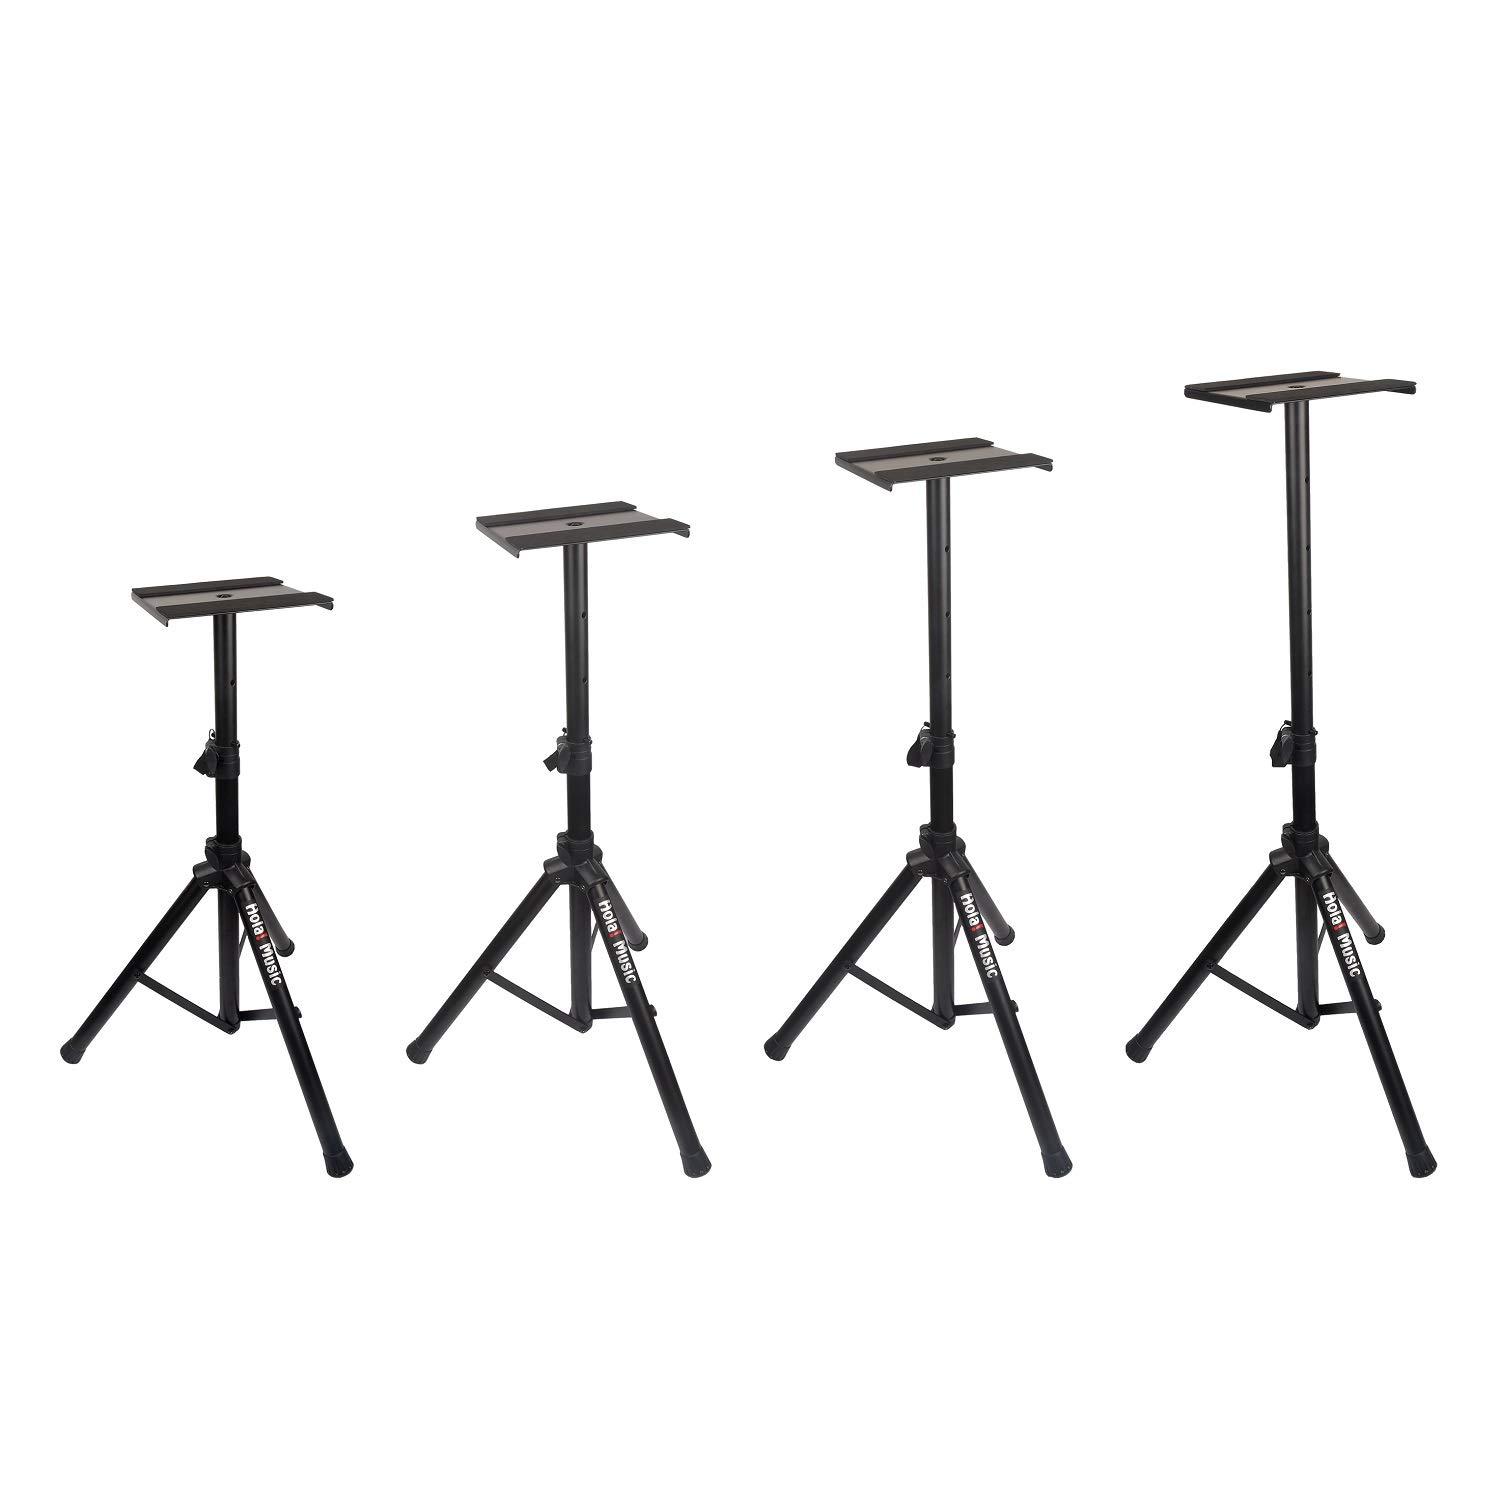 PAIR of Studio Monitor Speaker Stands by Hola! Music, Professional Heavy-Duty Tripod Structure, Adjustable Height, Model HPS-600MS by Hola! Music (Image #4)